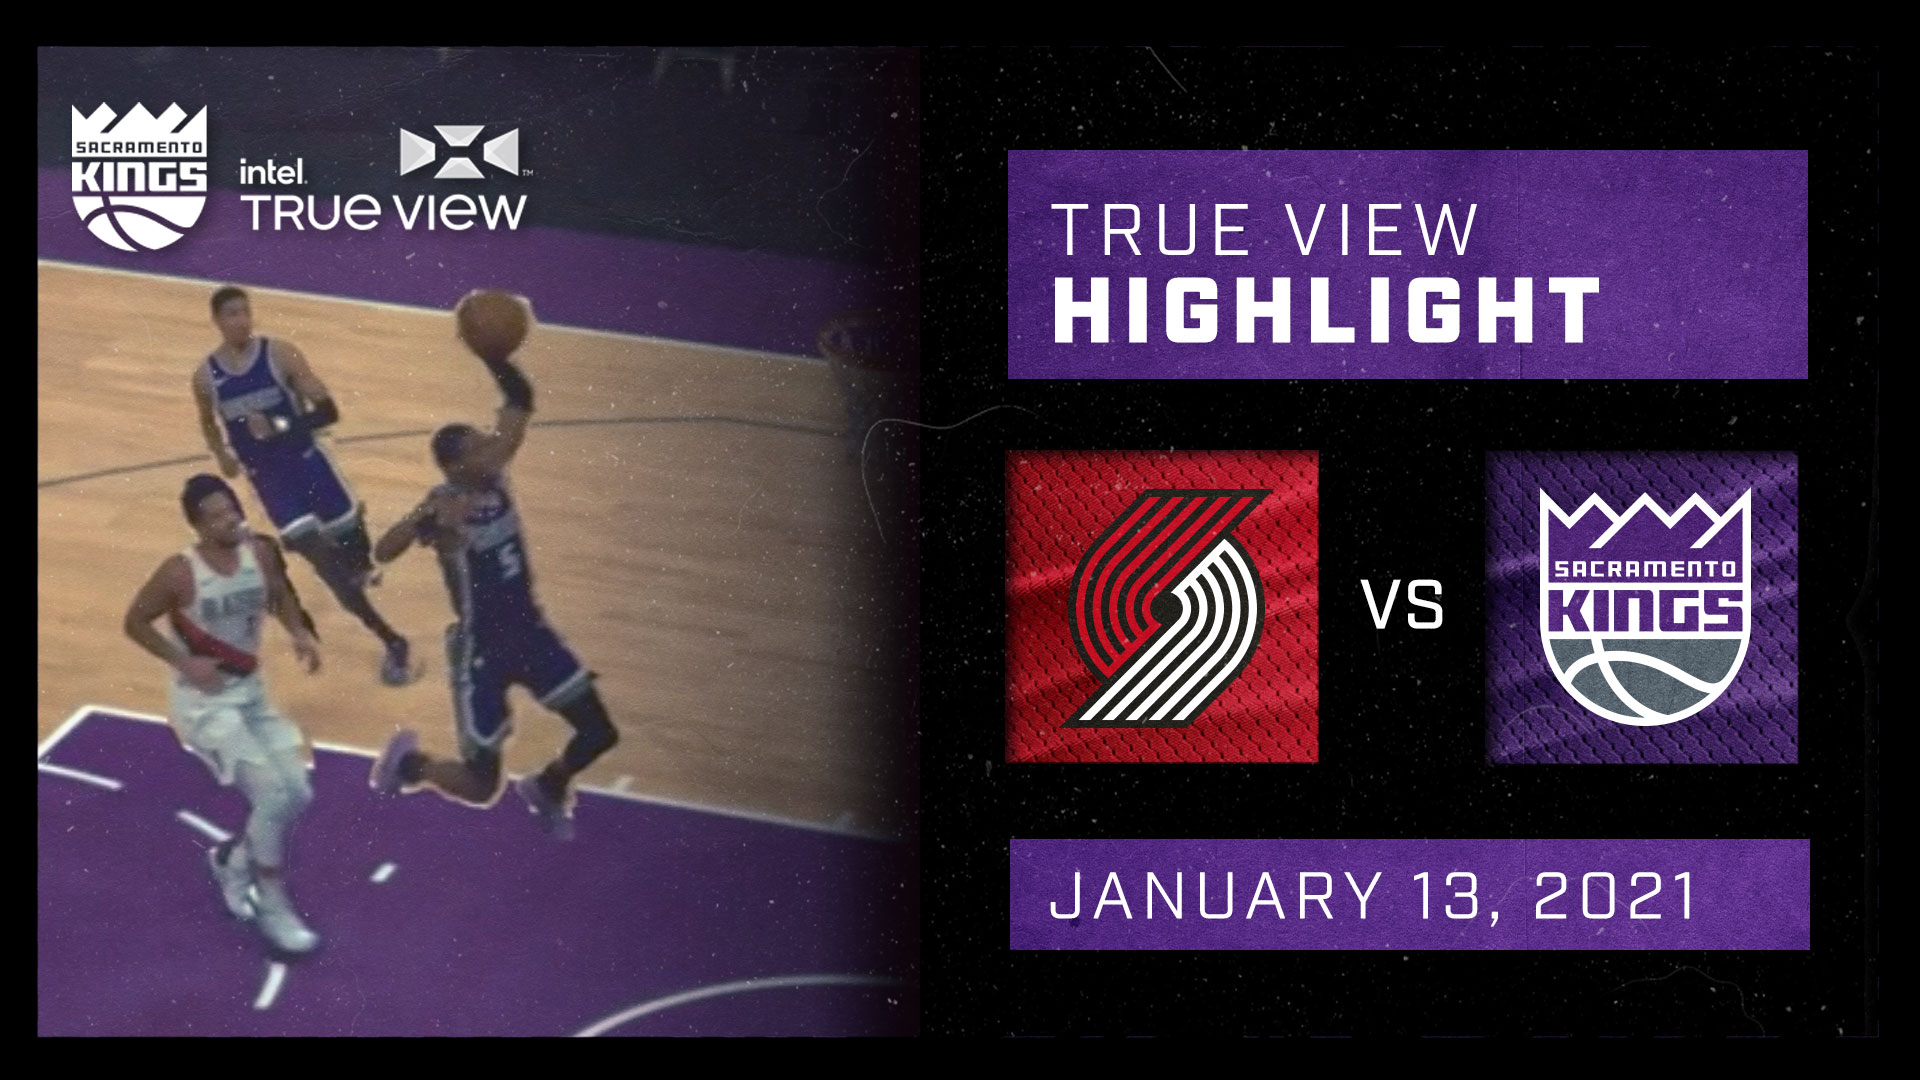 Intel True View Highlight - Ty Haliburton Steal and Assist vs Portland 1.13.21